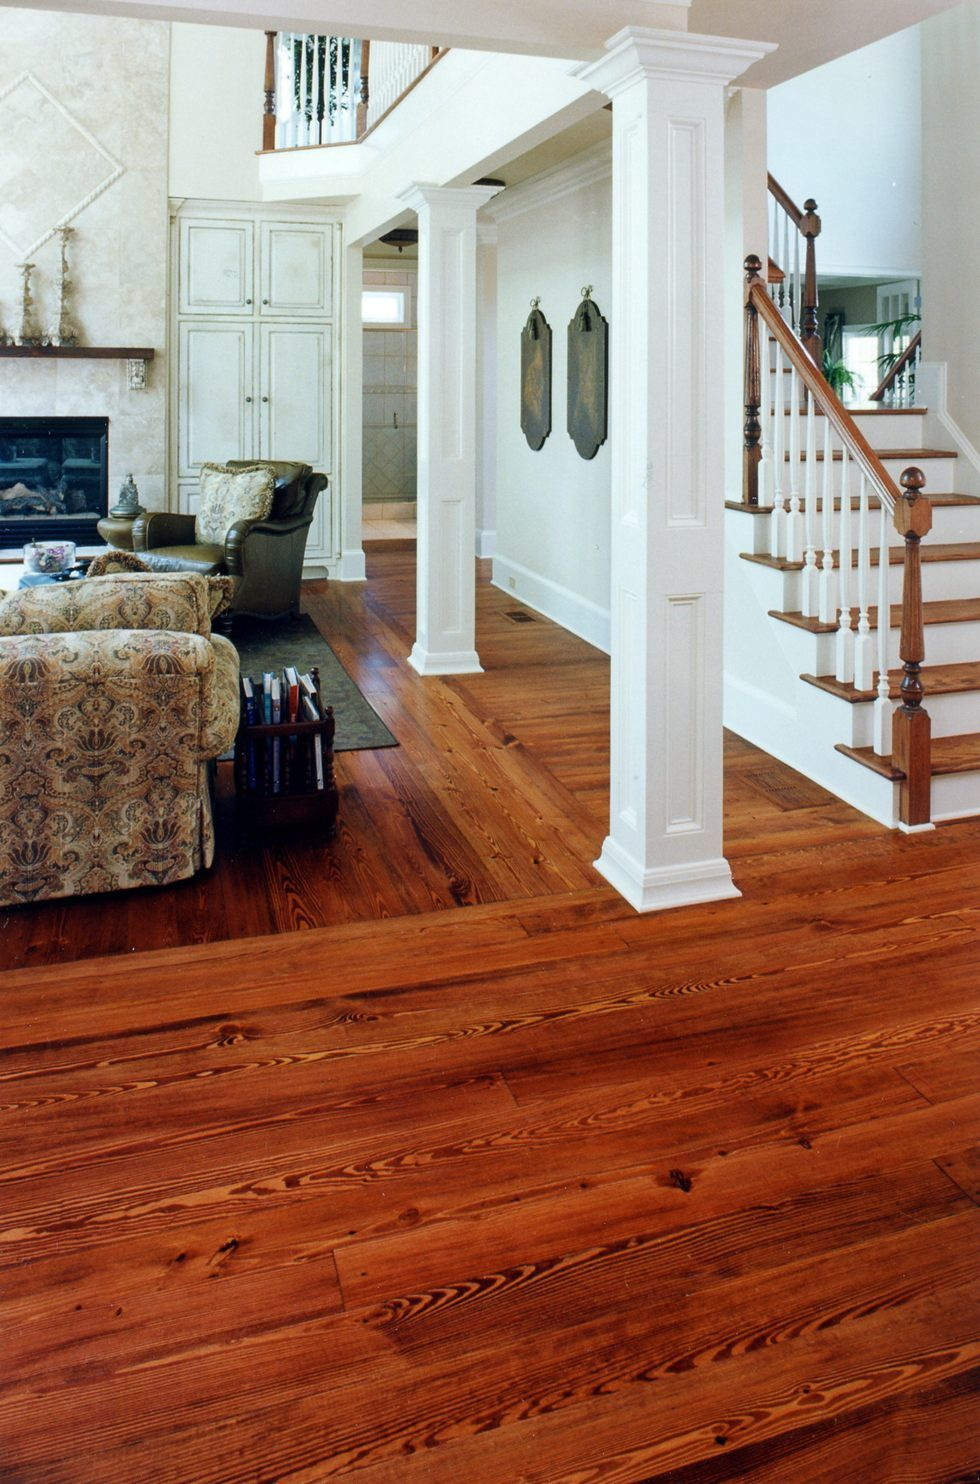 Unlike most floors authentic Heart Pine gets more colorful